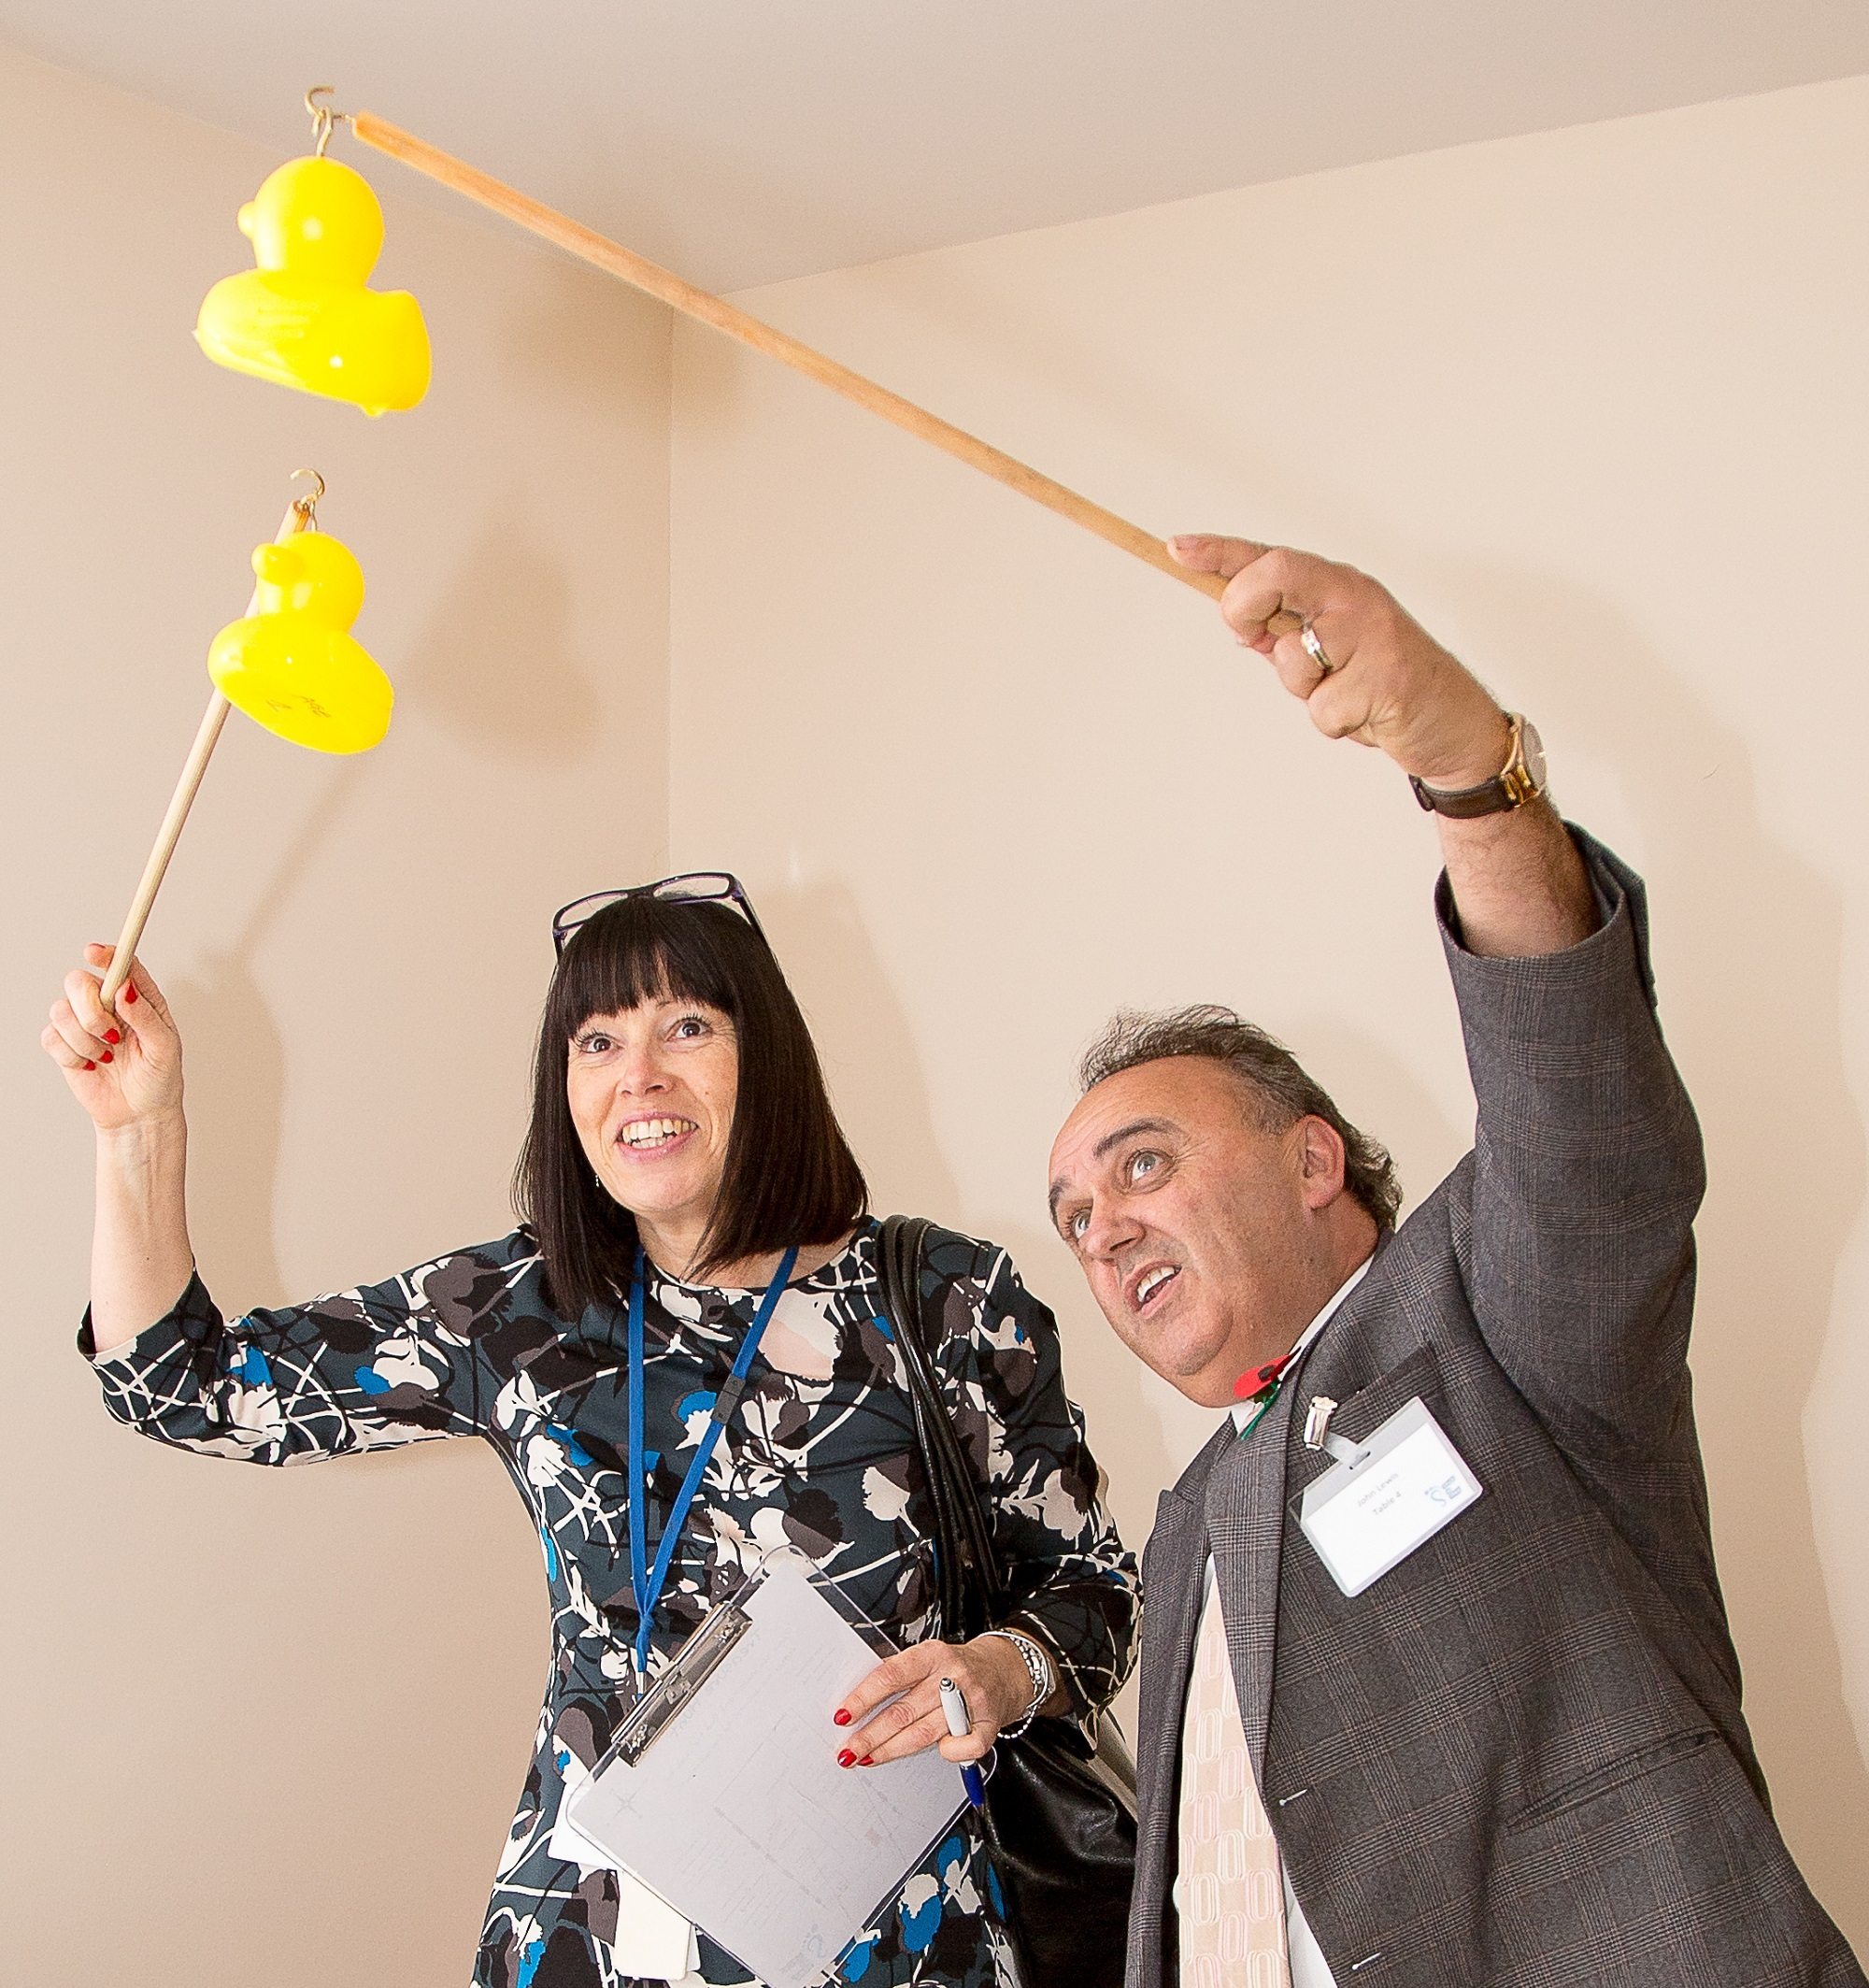 Lesley Lunt, sales and marketing manager from SOG Ltd alongside John Lewis, managing director of SOG Ltd having a go at hook a duck